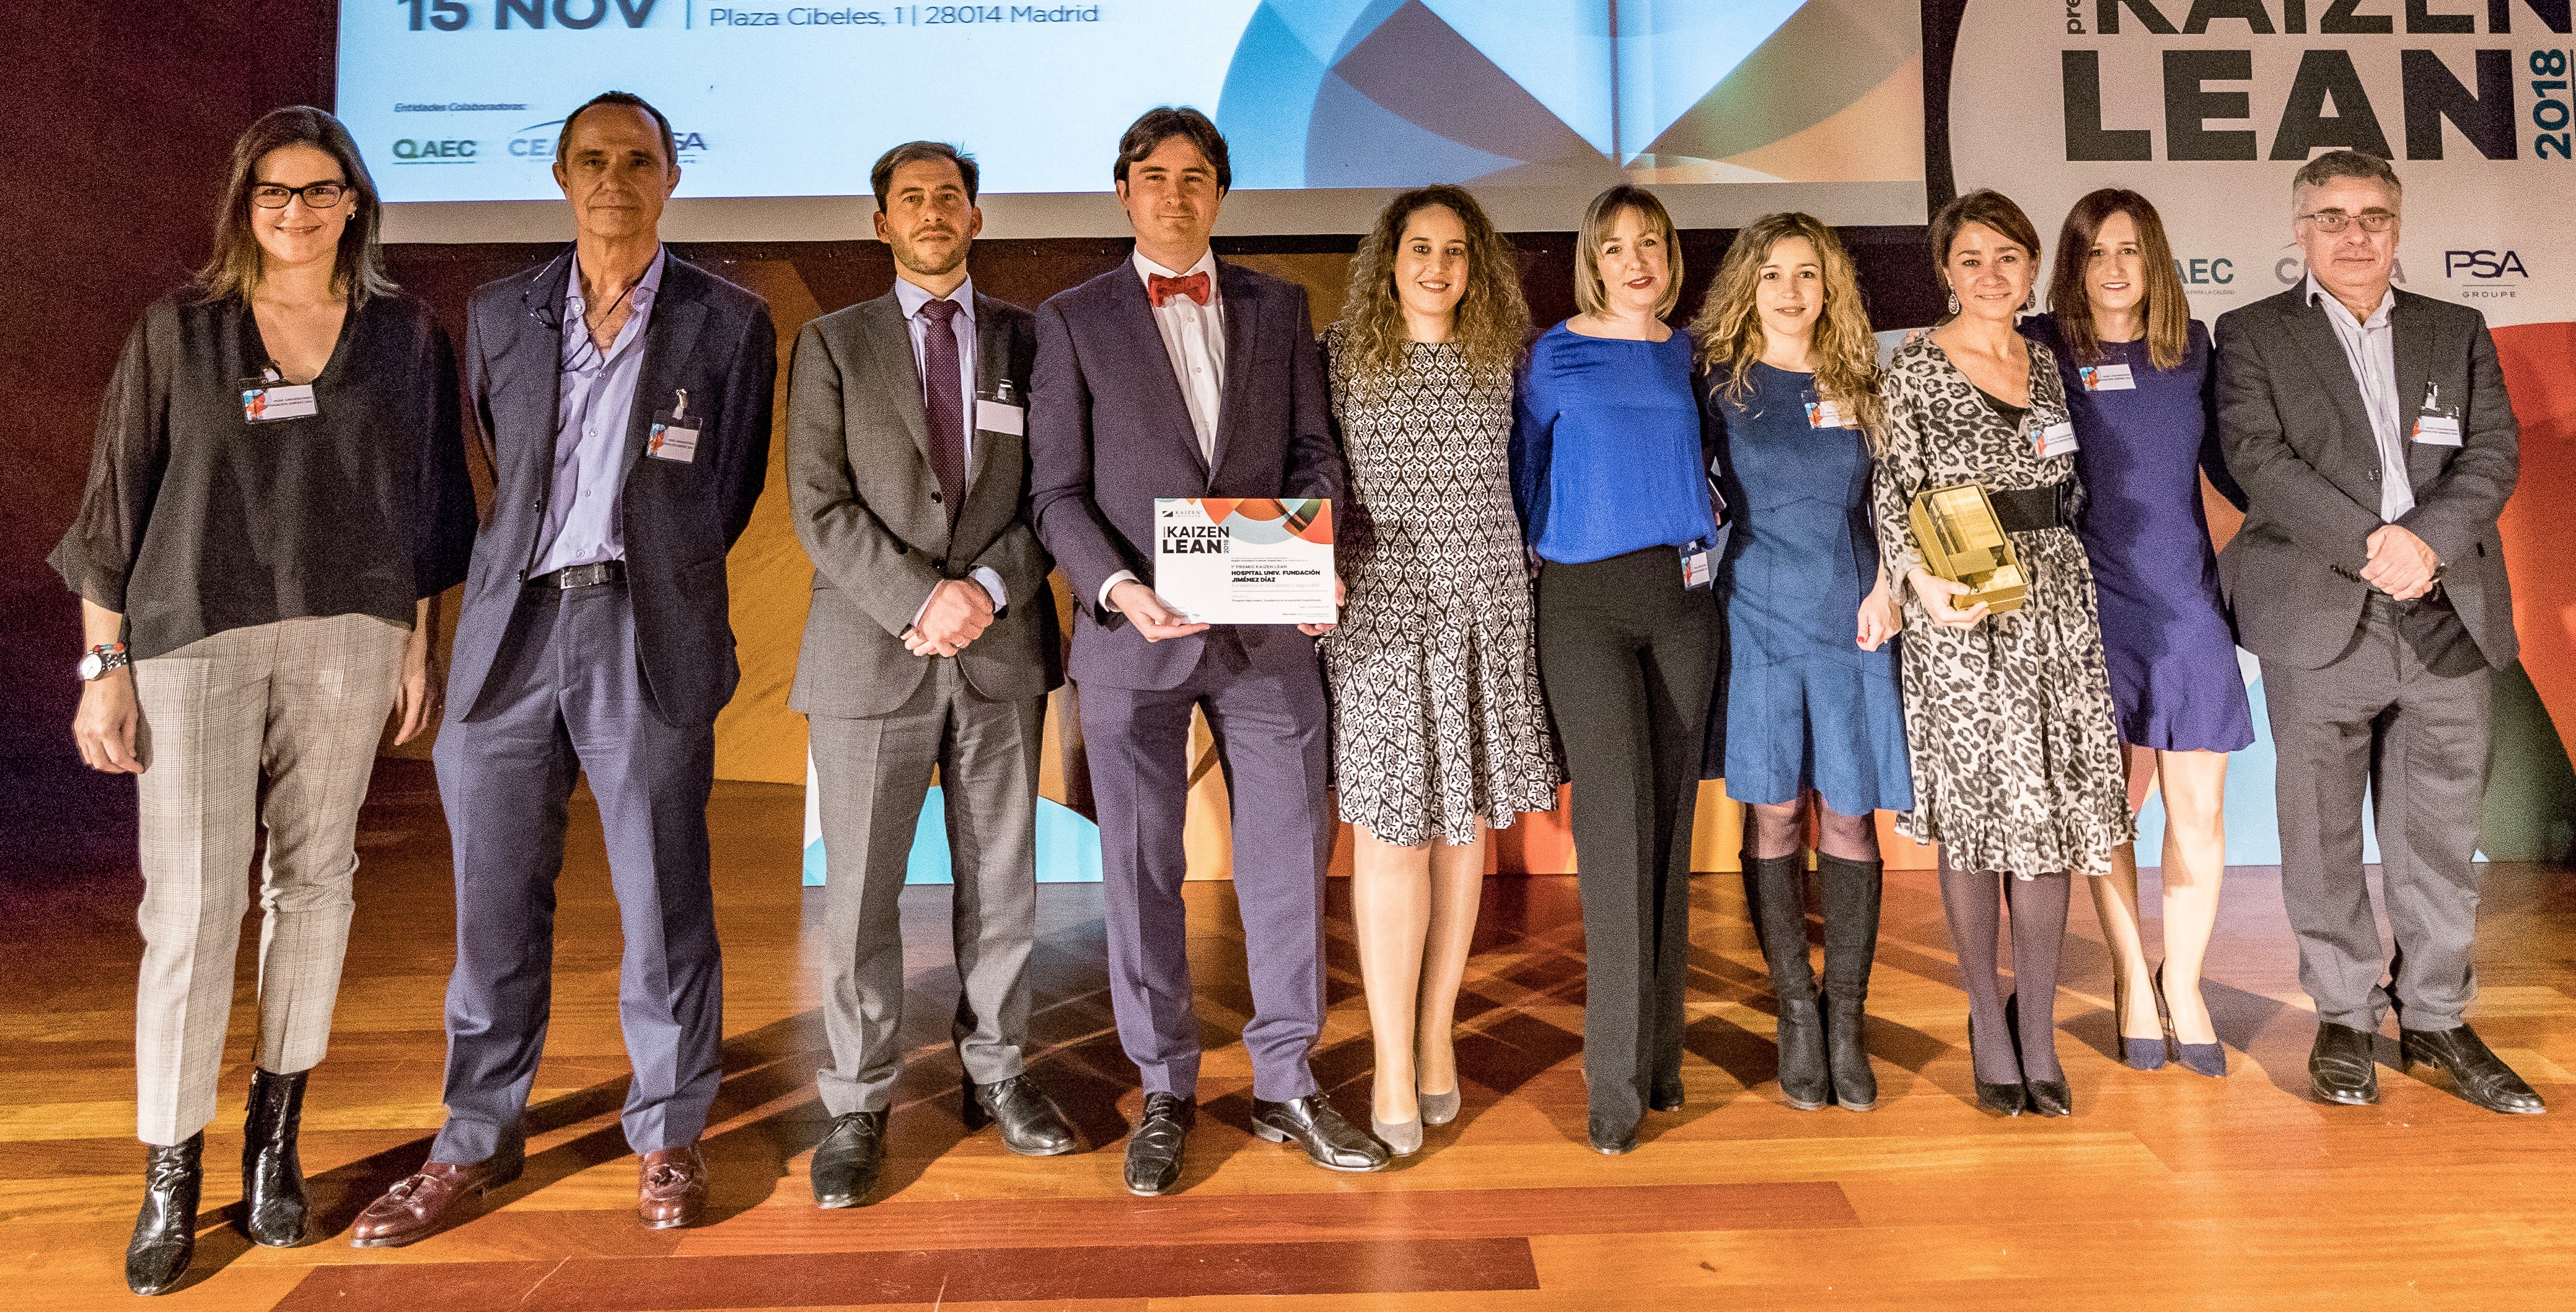 Kaizen Institute Spain awarded Hospital Universitario Fundación Jiménez Díaz with the Premio KAIZEN™ Lean España 2018, Category: Excellence in Quality and Security